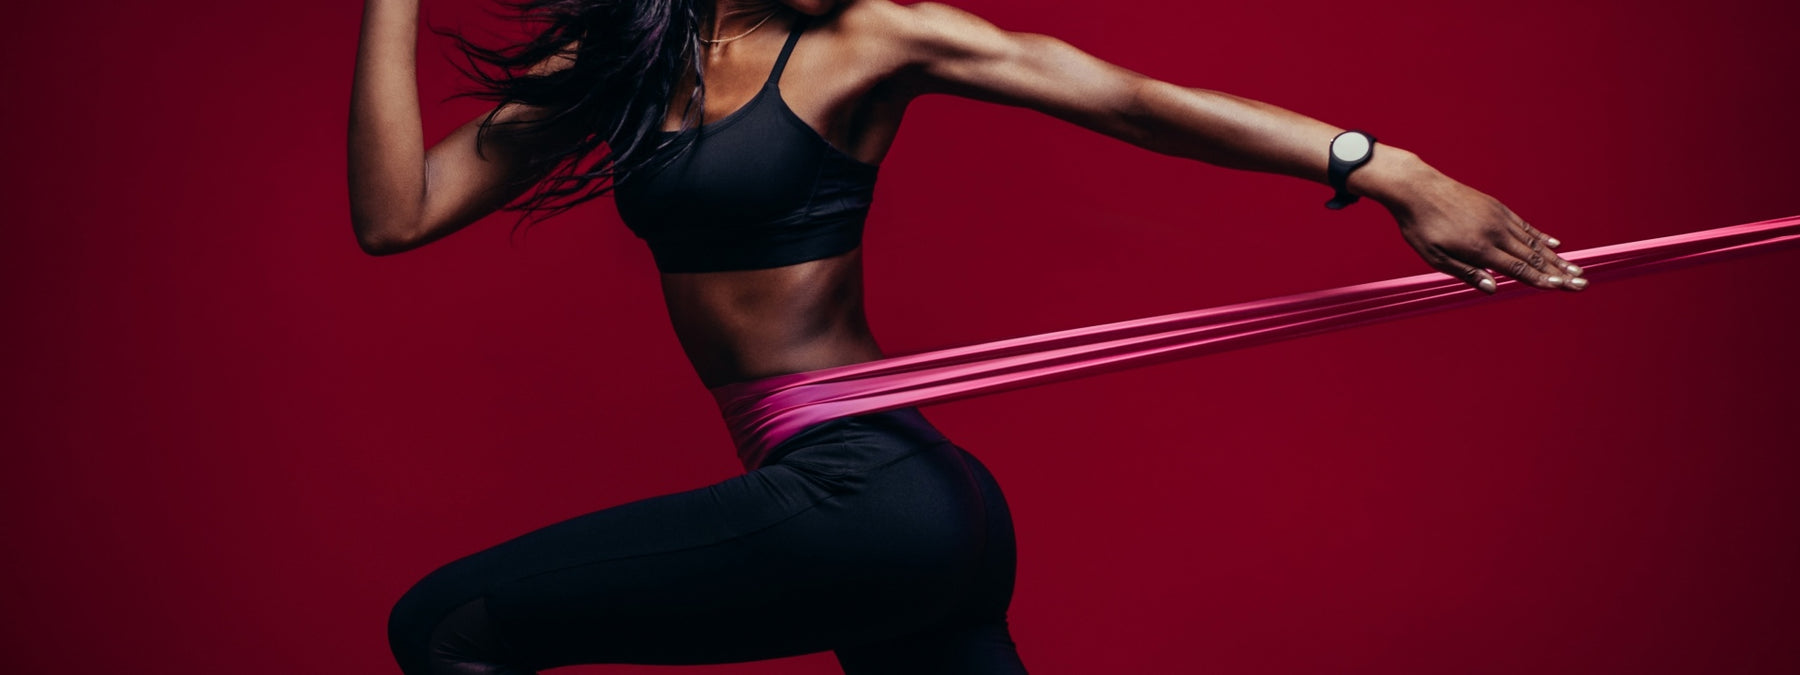 Push Past Workout Plateaus With Resistance Band Training